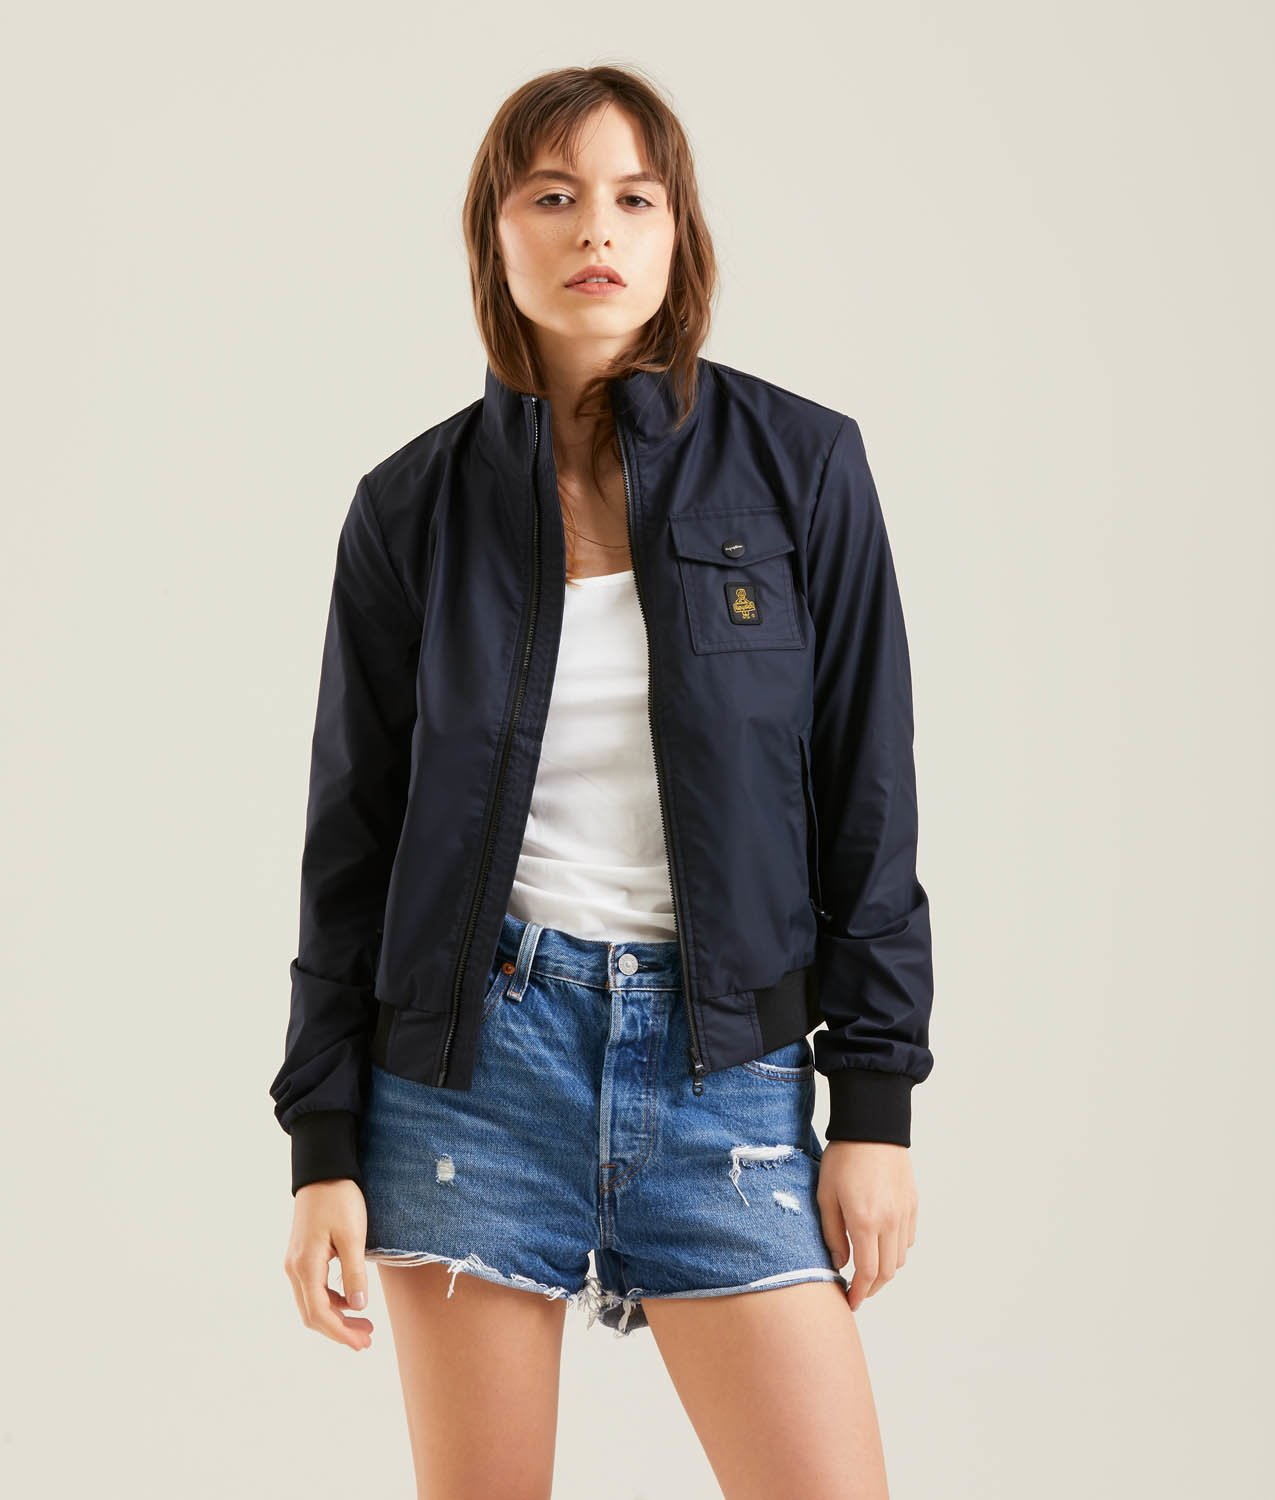 LADY CAPTAIN  JACKET